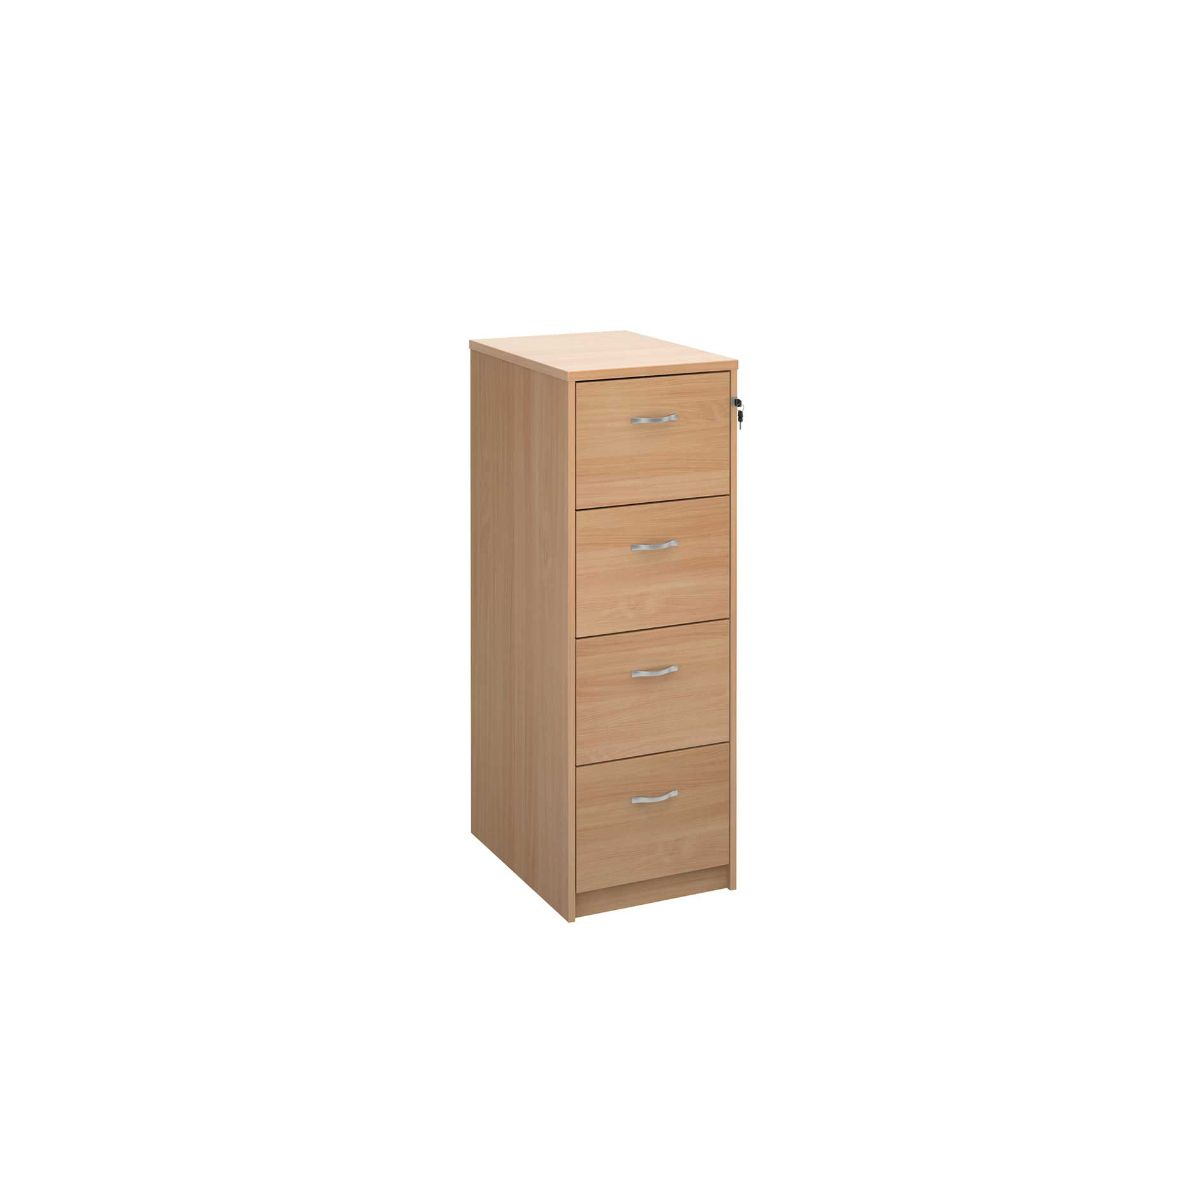 Deluxe Executive Four Drawer Filing Cabinet, Beech